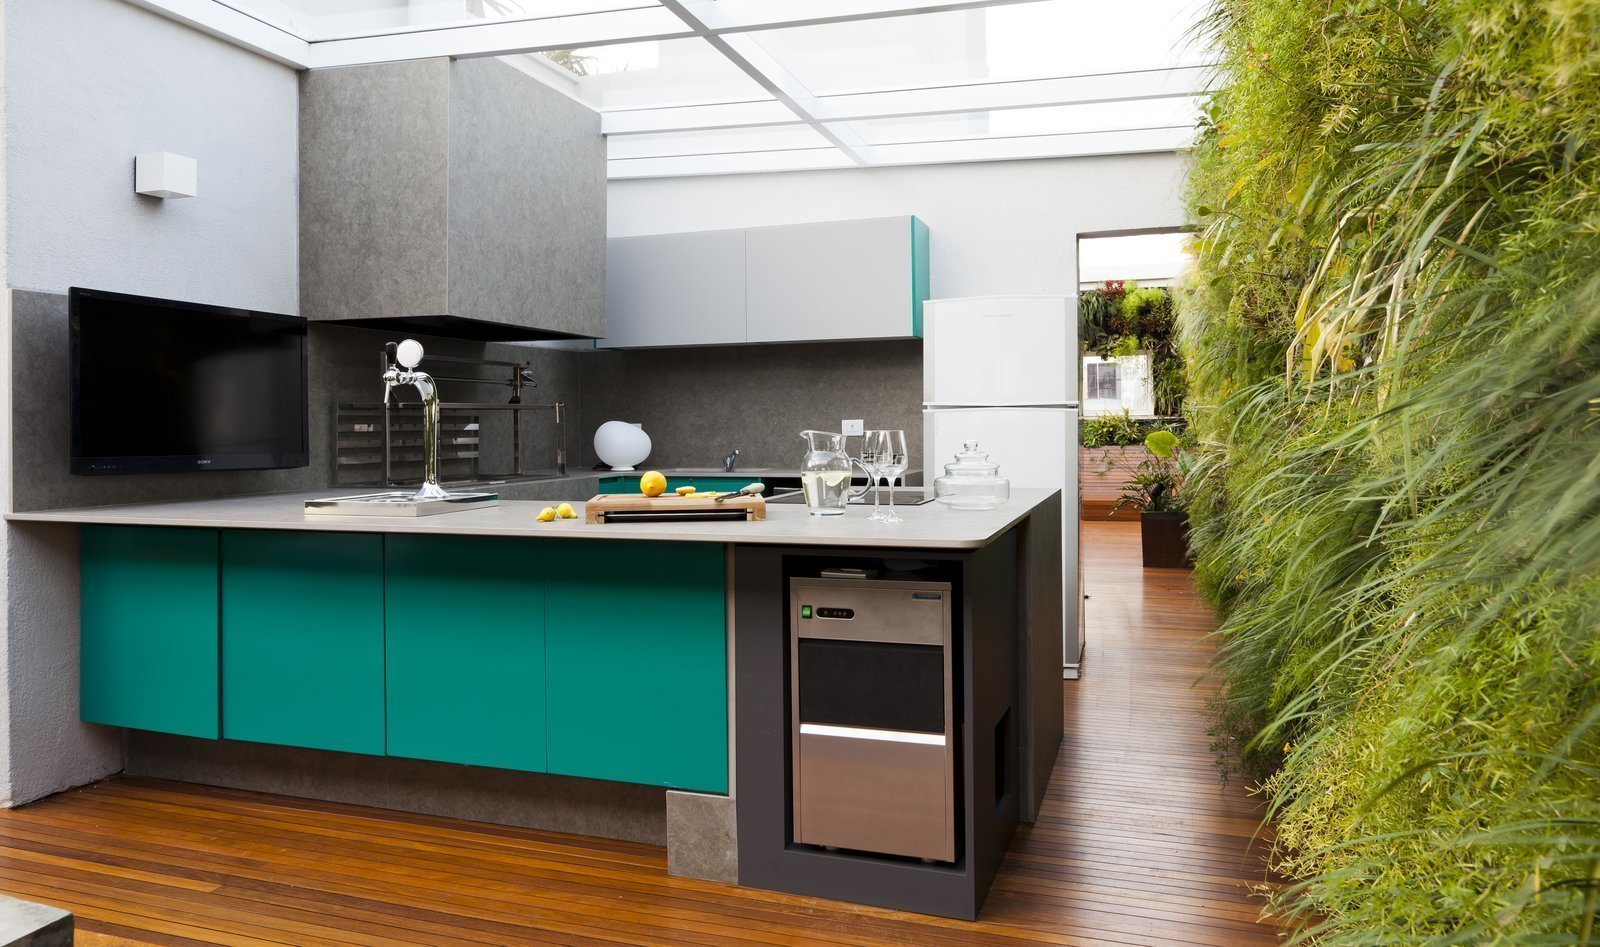 Kitchen, Colorful Cabinet, Medium Hardwood Floor, Wall Lighting, Undermount Sink, Refrigerator, and Beverage Center This São Paulo by Casa14 Arquitetura has plenty or large thresholds and open spaces, and a kitchen with turquoise cabinets surrounded by lush vertical green walls.  Photo 11 of 13 in 12 Electrifying Kitchens That Are Unapologetic About Color